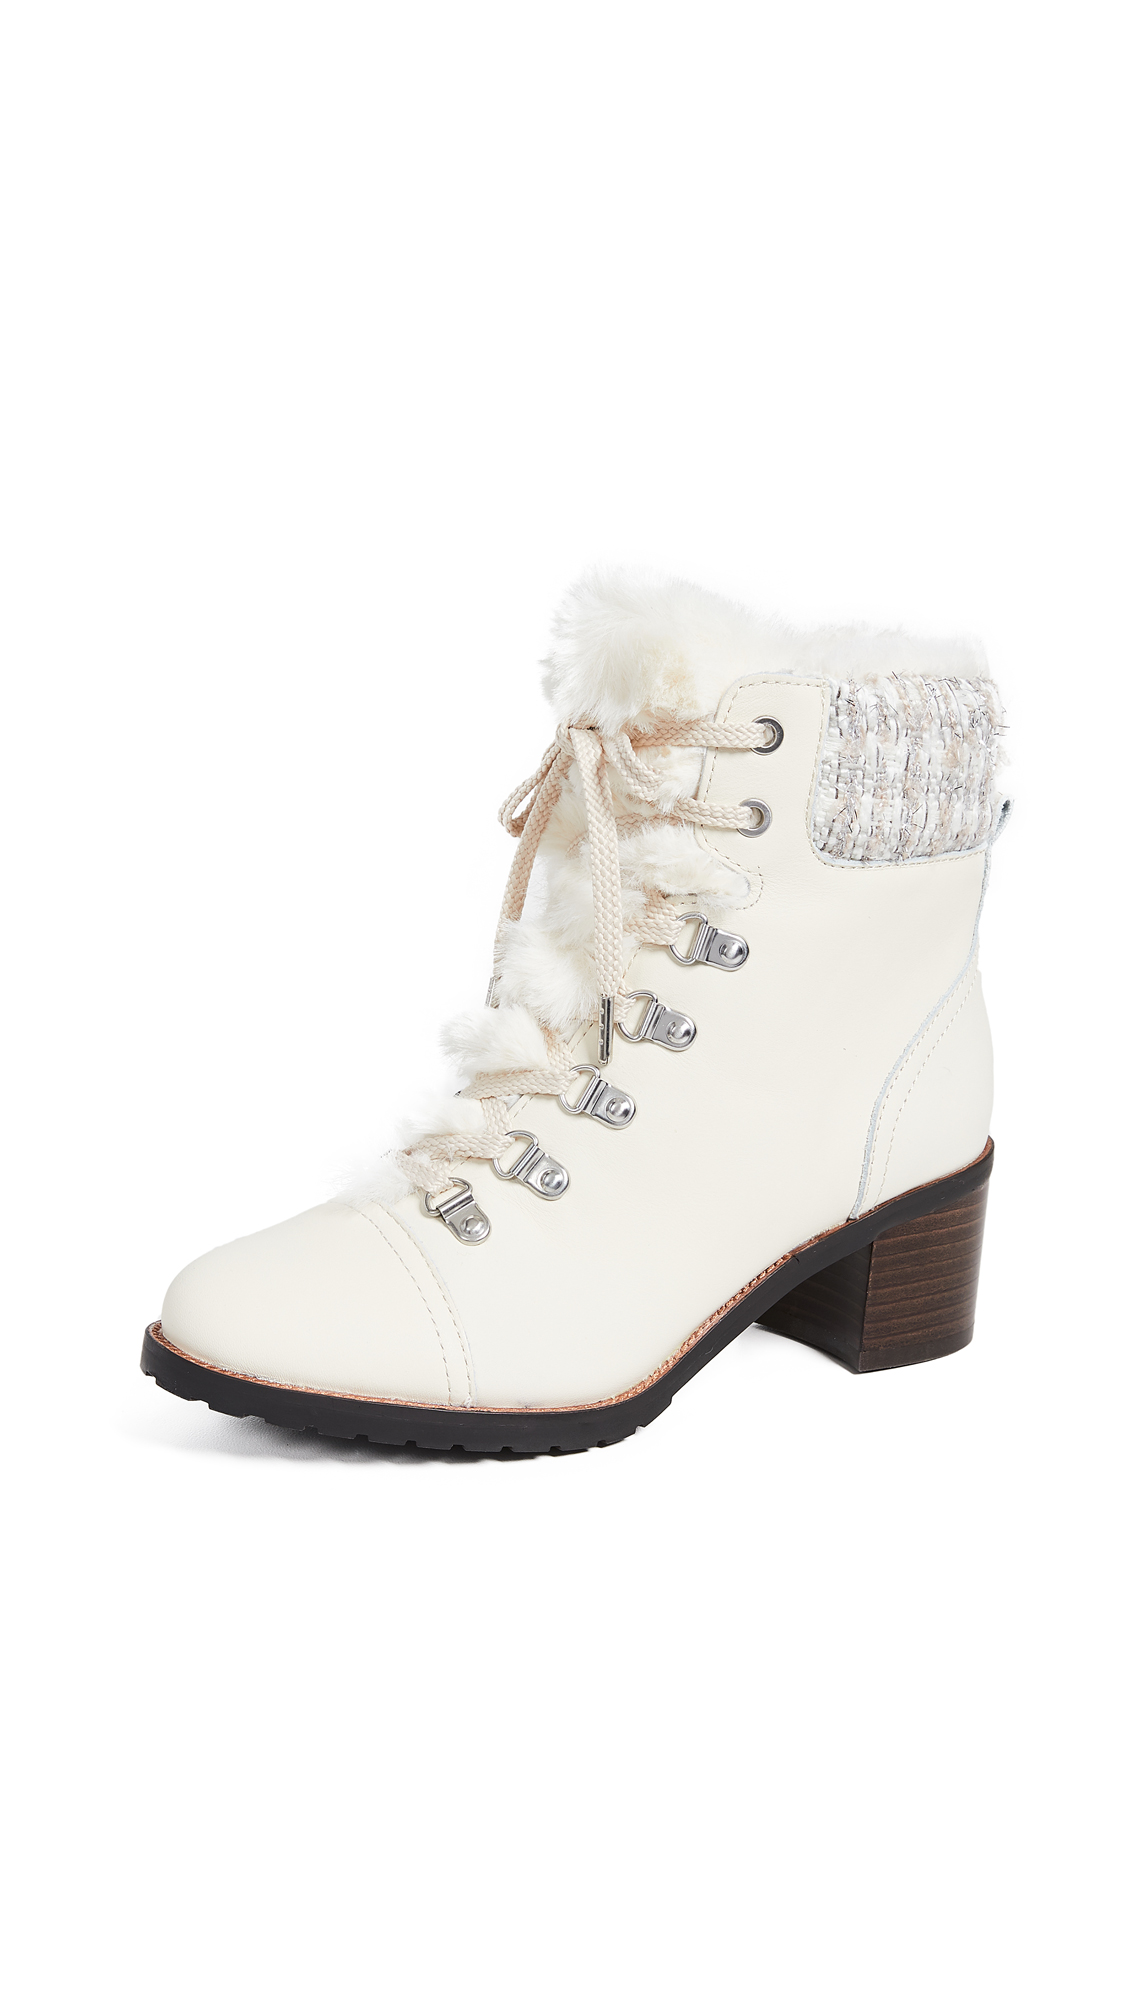 Sam Edelman Manchester Boots - Modern Ivory/Ivory Multi